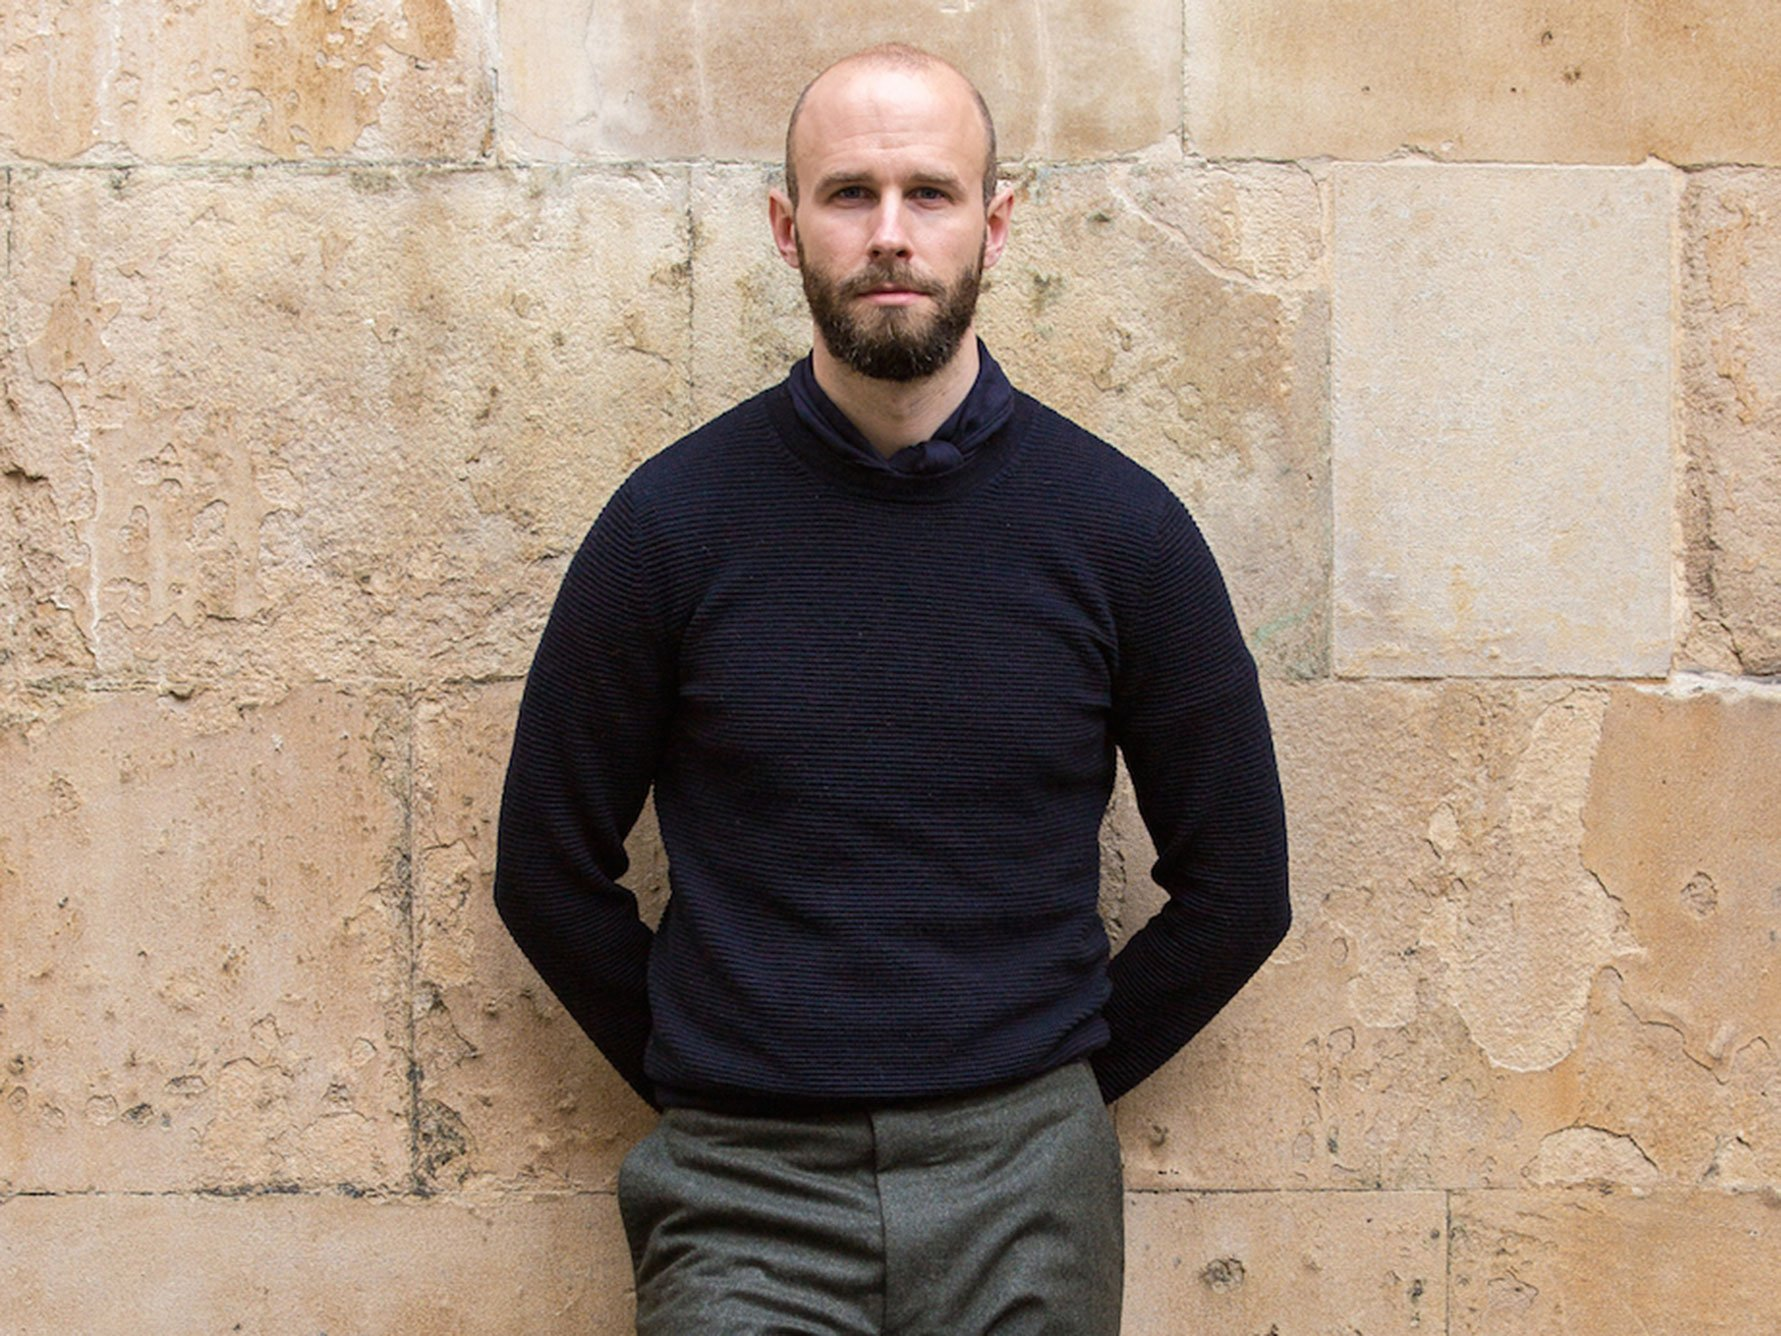 Simon Crompton leans against a brick wall wearing a navy jumper with navy cashmere square neckerchief and grey slacks